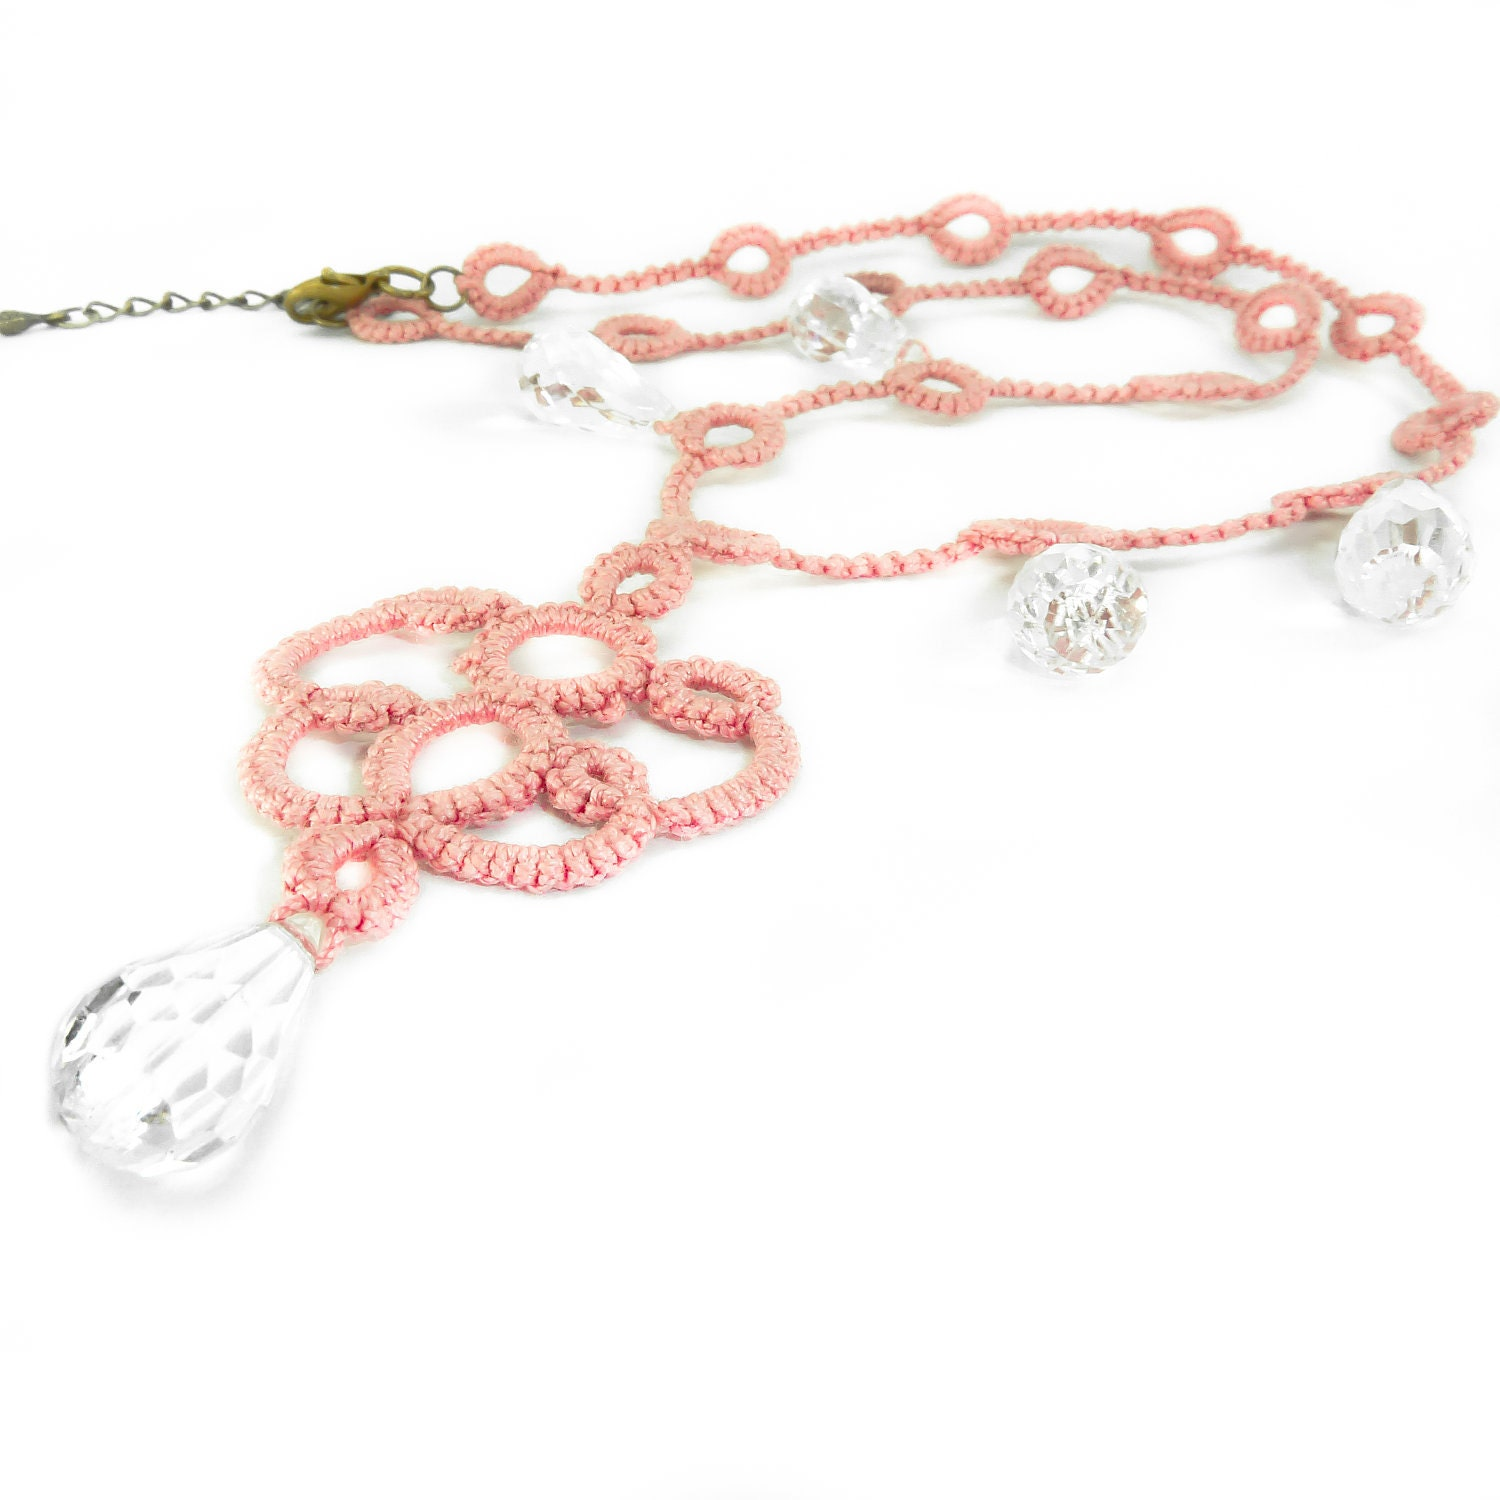 Braidsmaide pink lace necklace - Decoromana